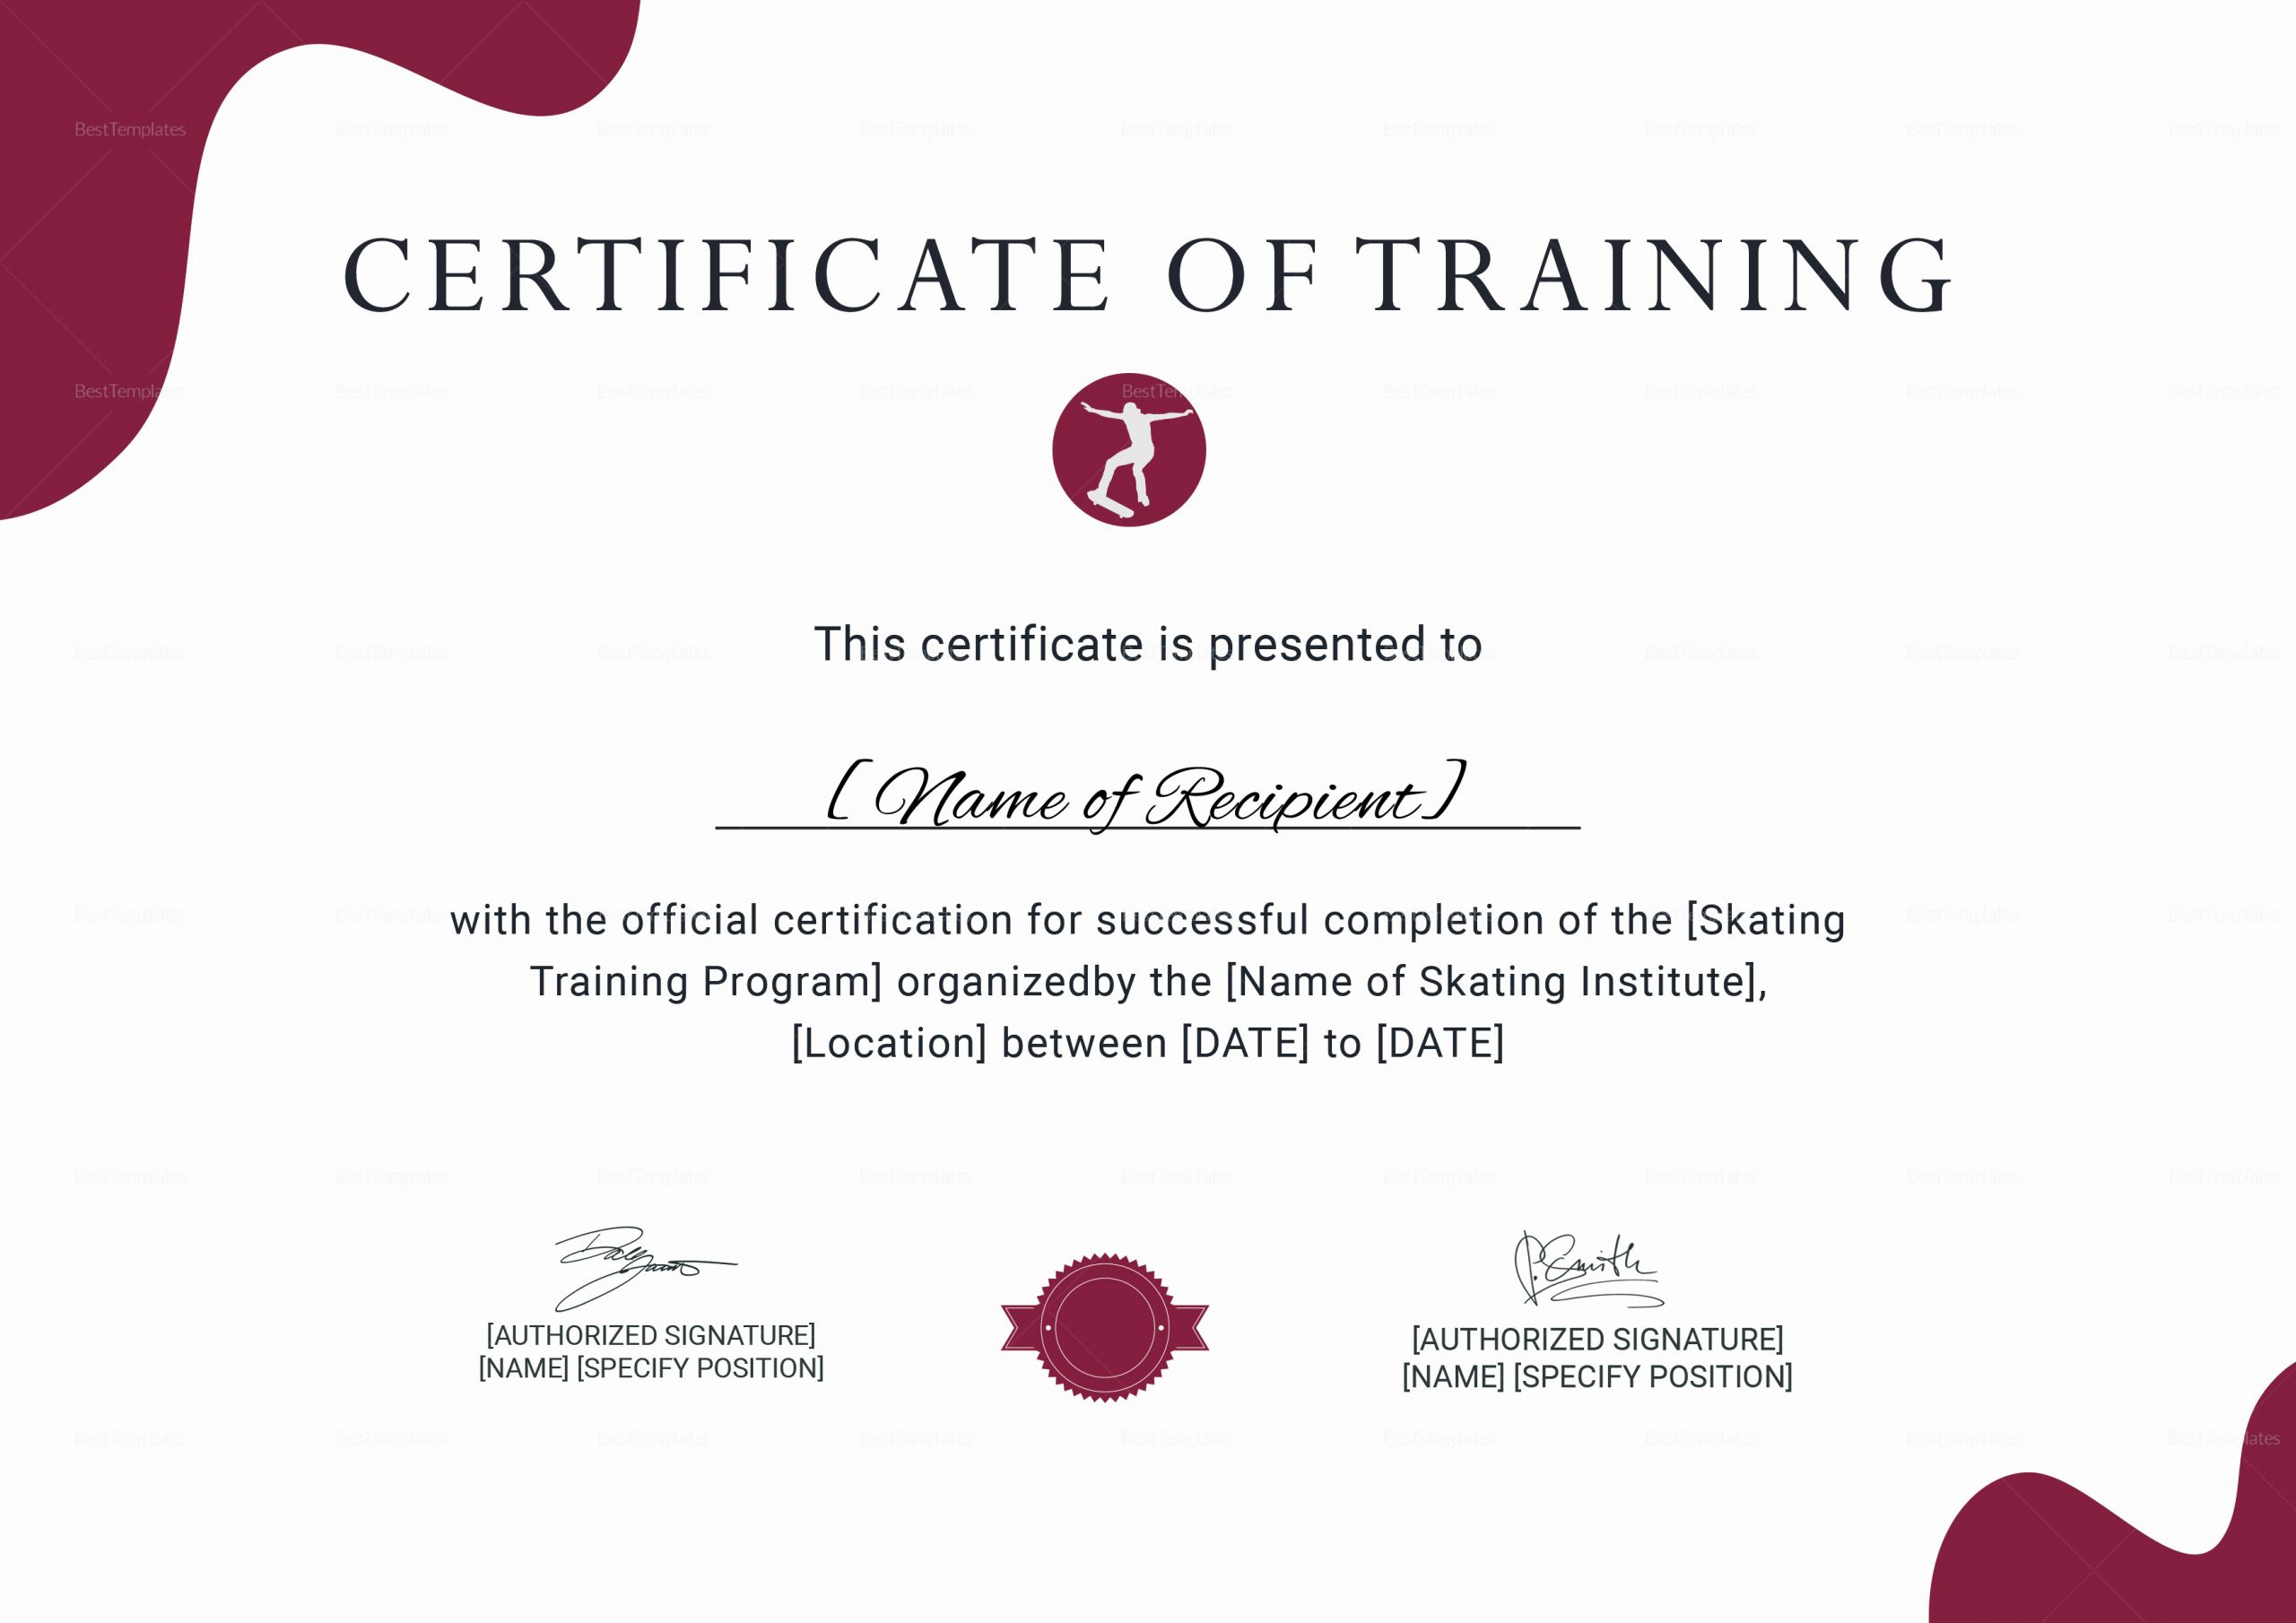 Training Certificate Template Doc Luxury Training Certificate for Skating Design Template In Psd Word